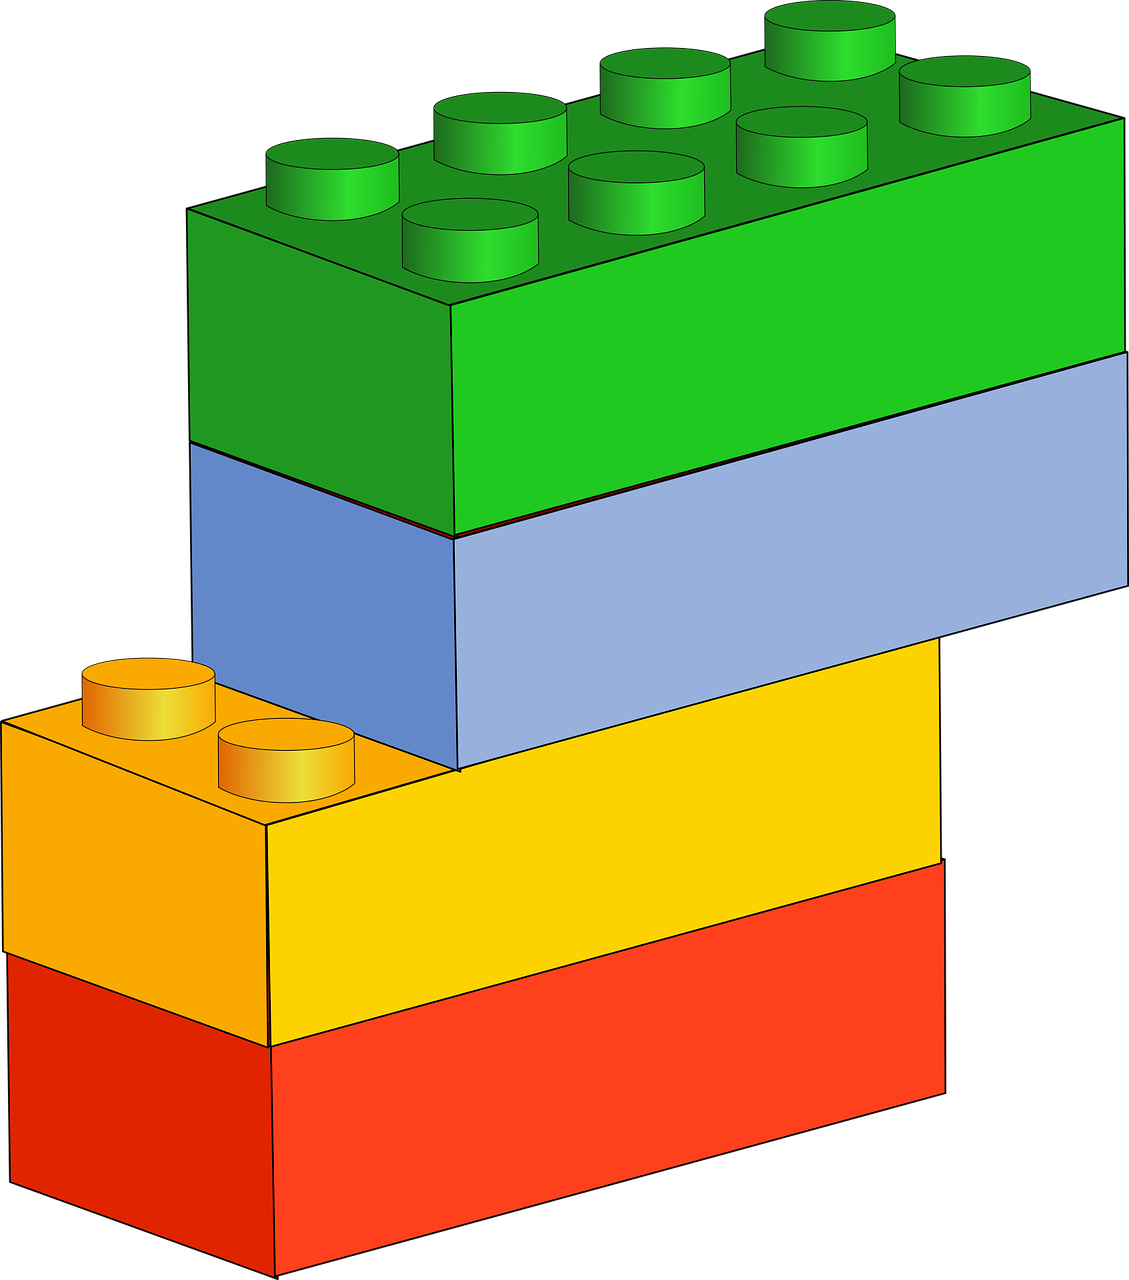 Legos clipart part. Lego free content toy